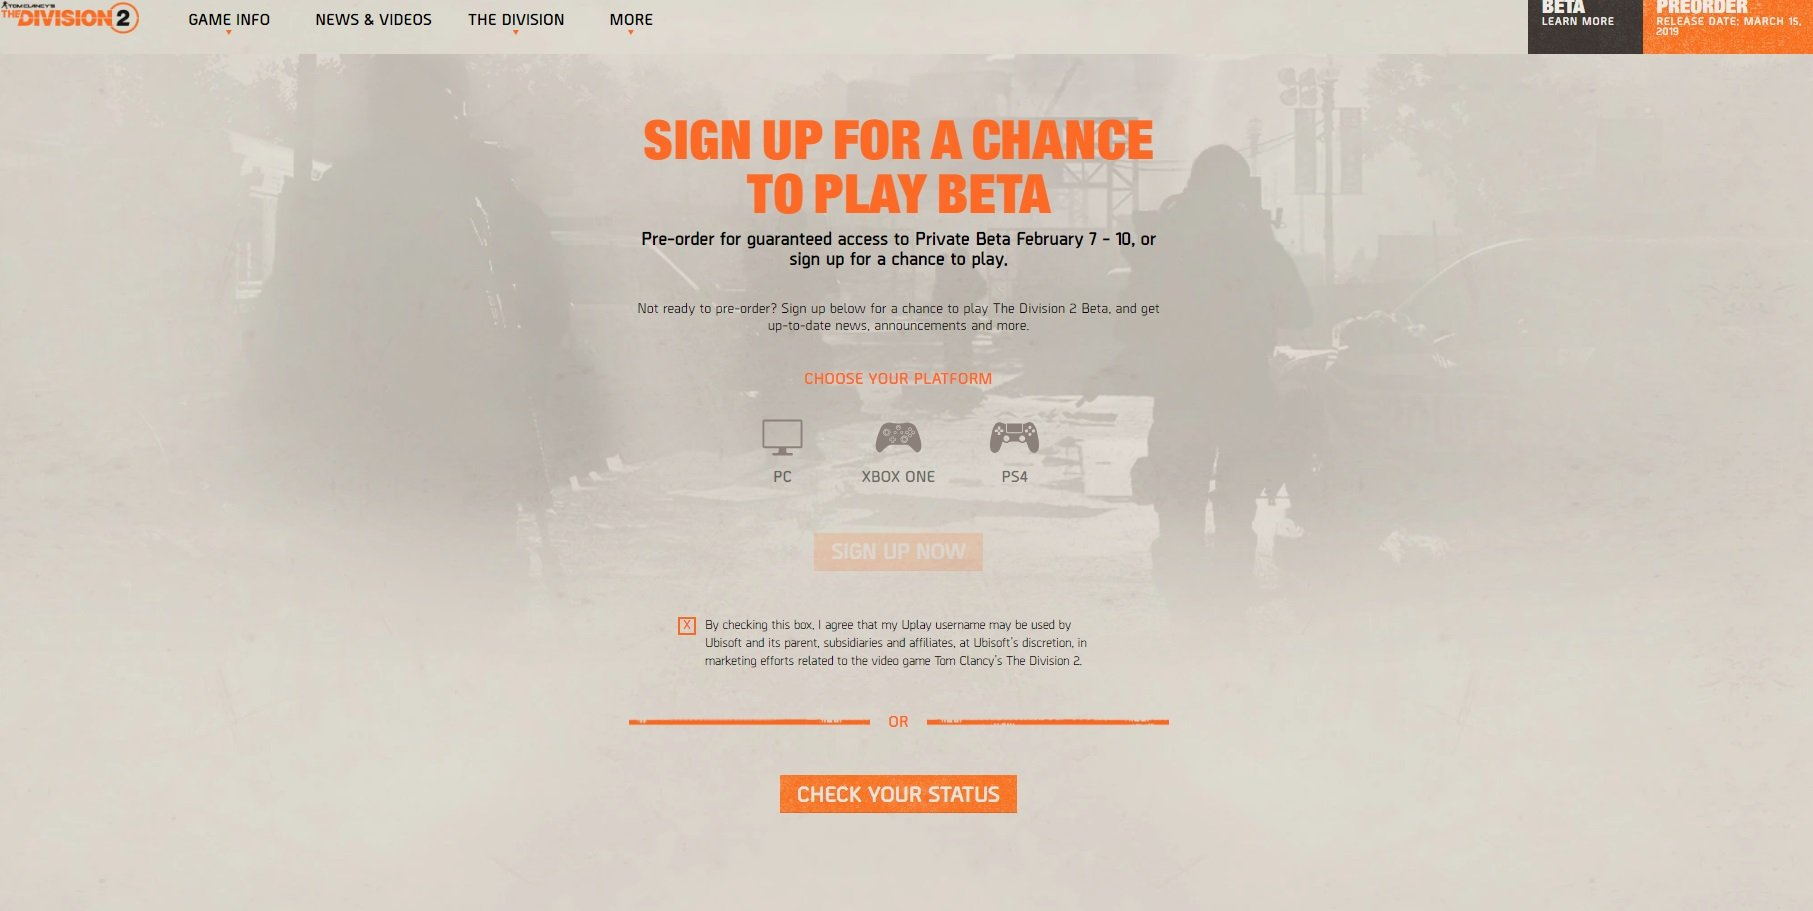 You can sign up for closed beta access on the website for Tom Clancy's The Division 2.